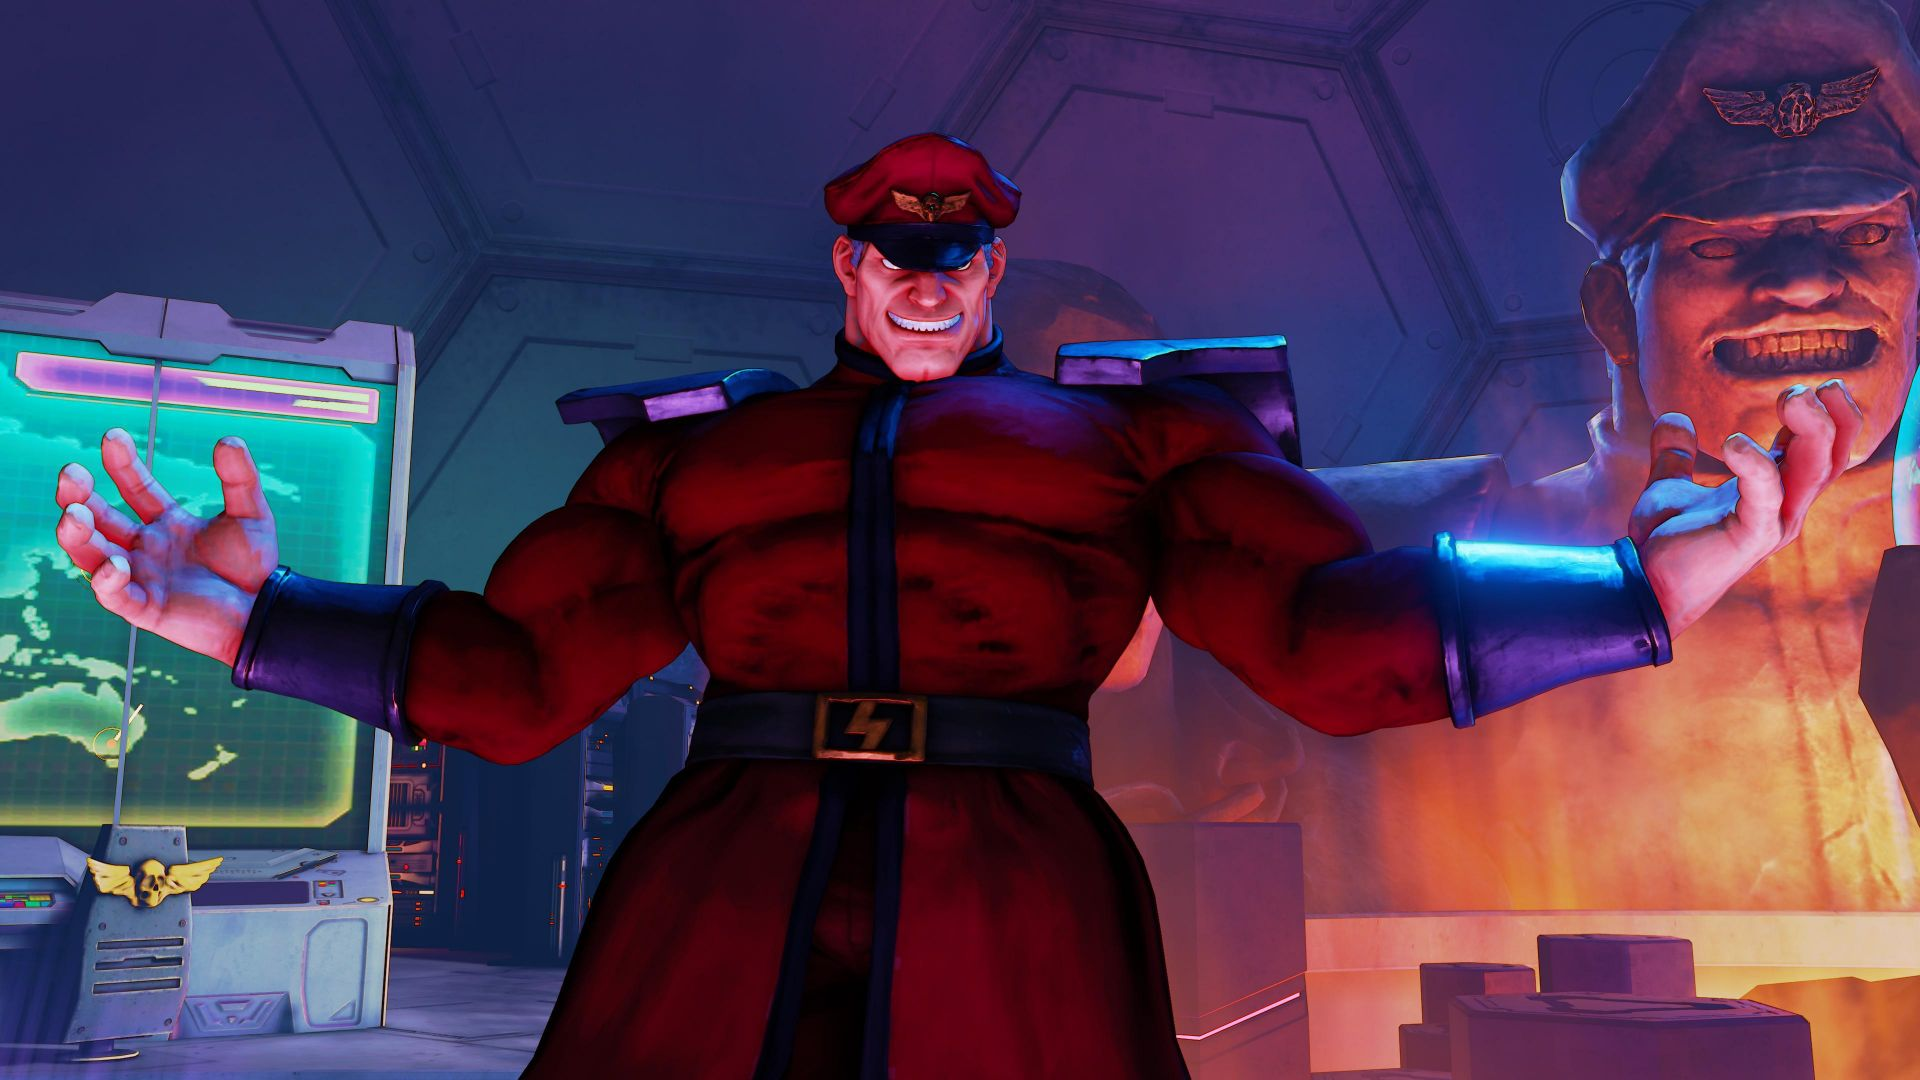 Street Fighter 5, M. BISON, Best Games, fantasy, PC, PS4 (horizontal)